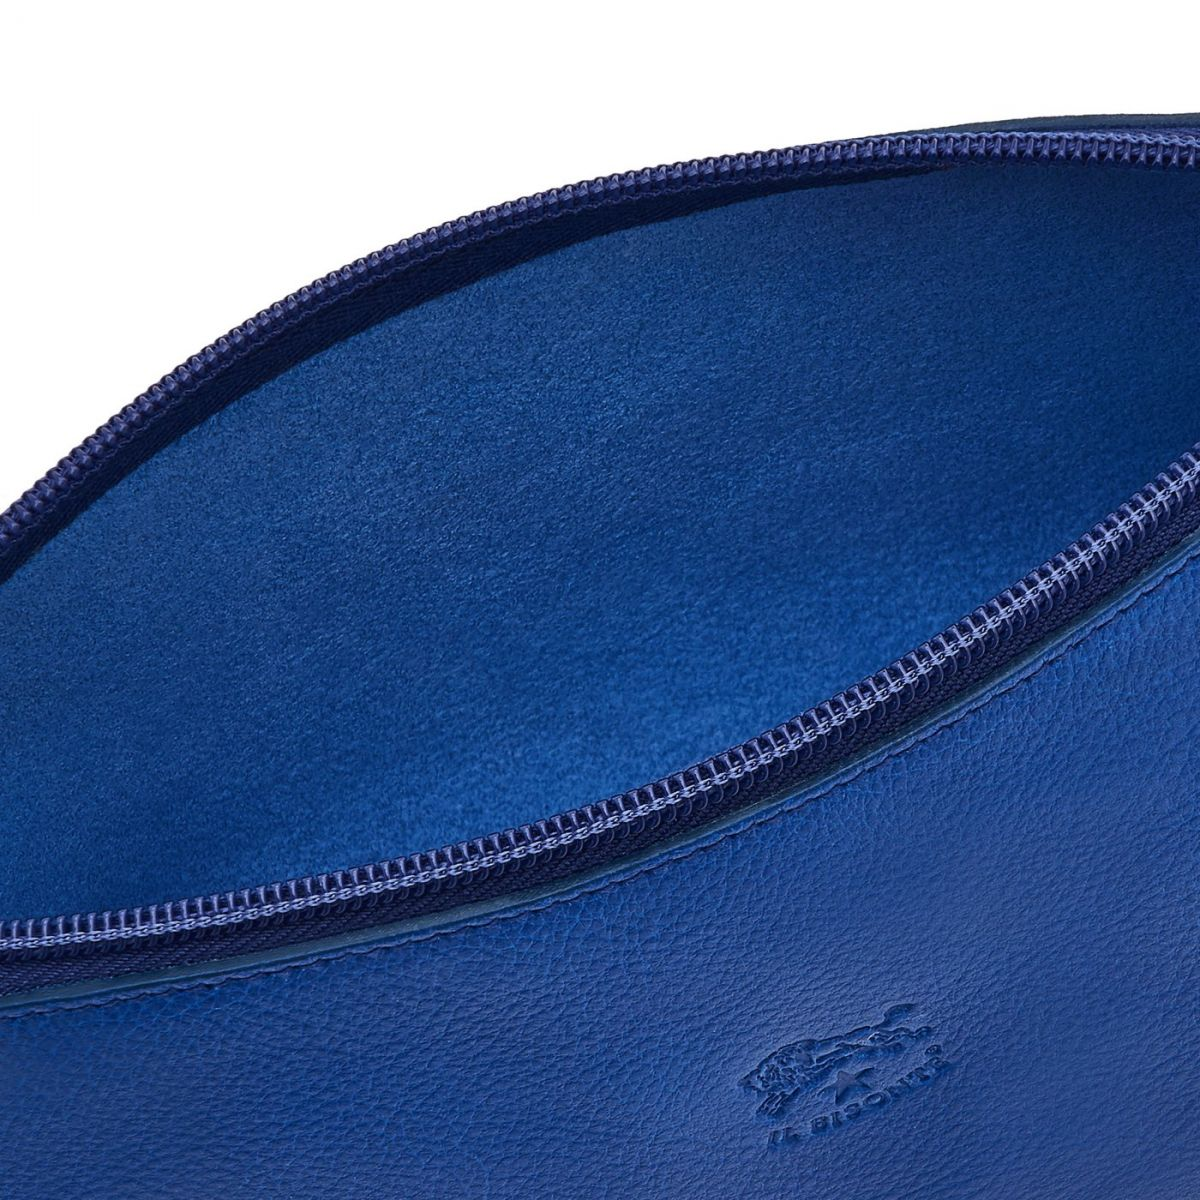 Women's Case in Cowhide Leather SCA033 color Blueberry | Details